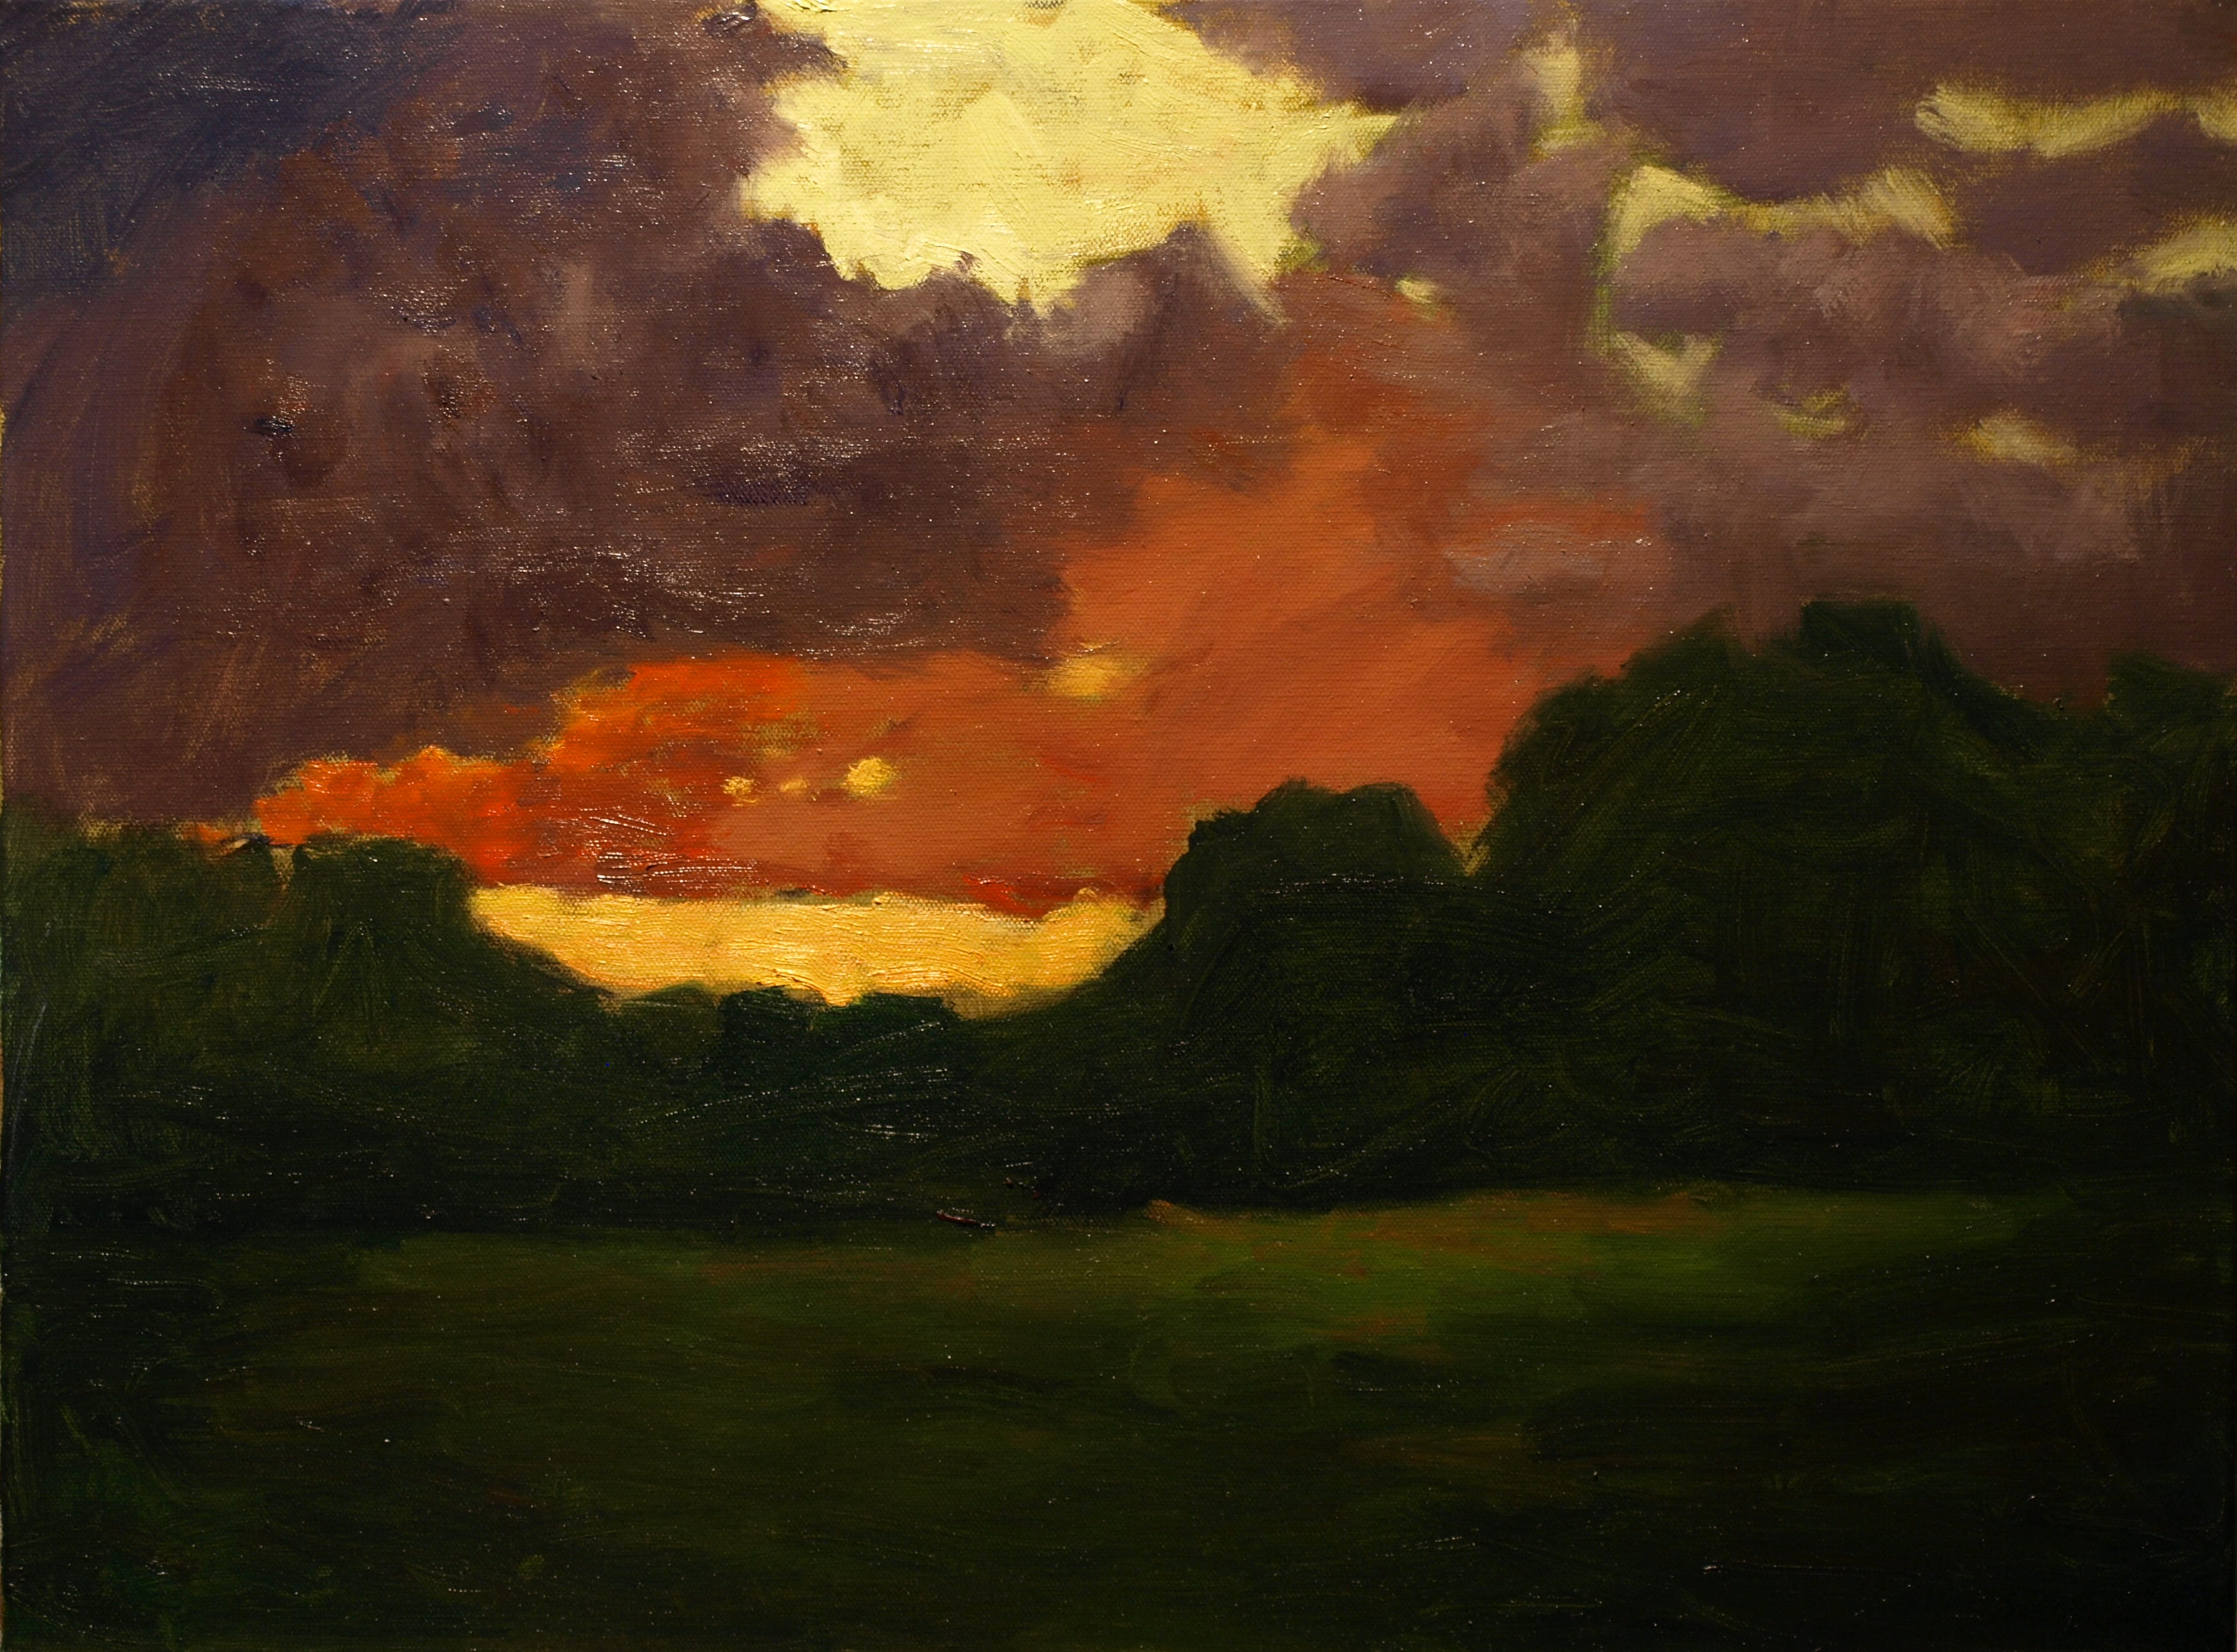 After the Heavy Rains, Oil on Canvas, 18 x 24 Inches, by Richard Stalter, $750